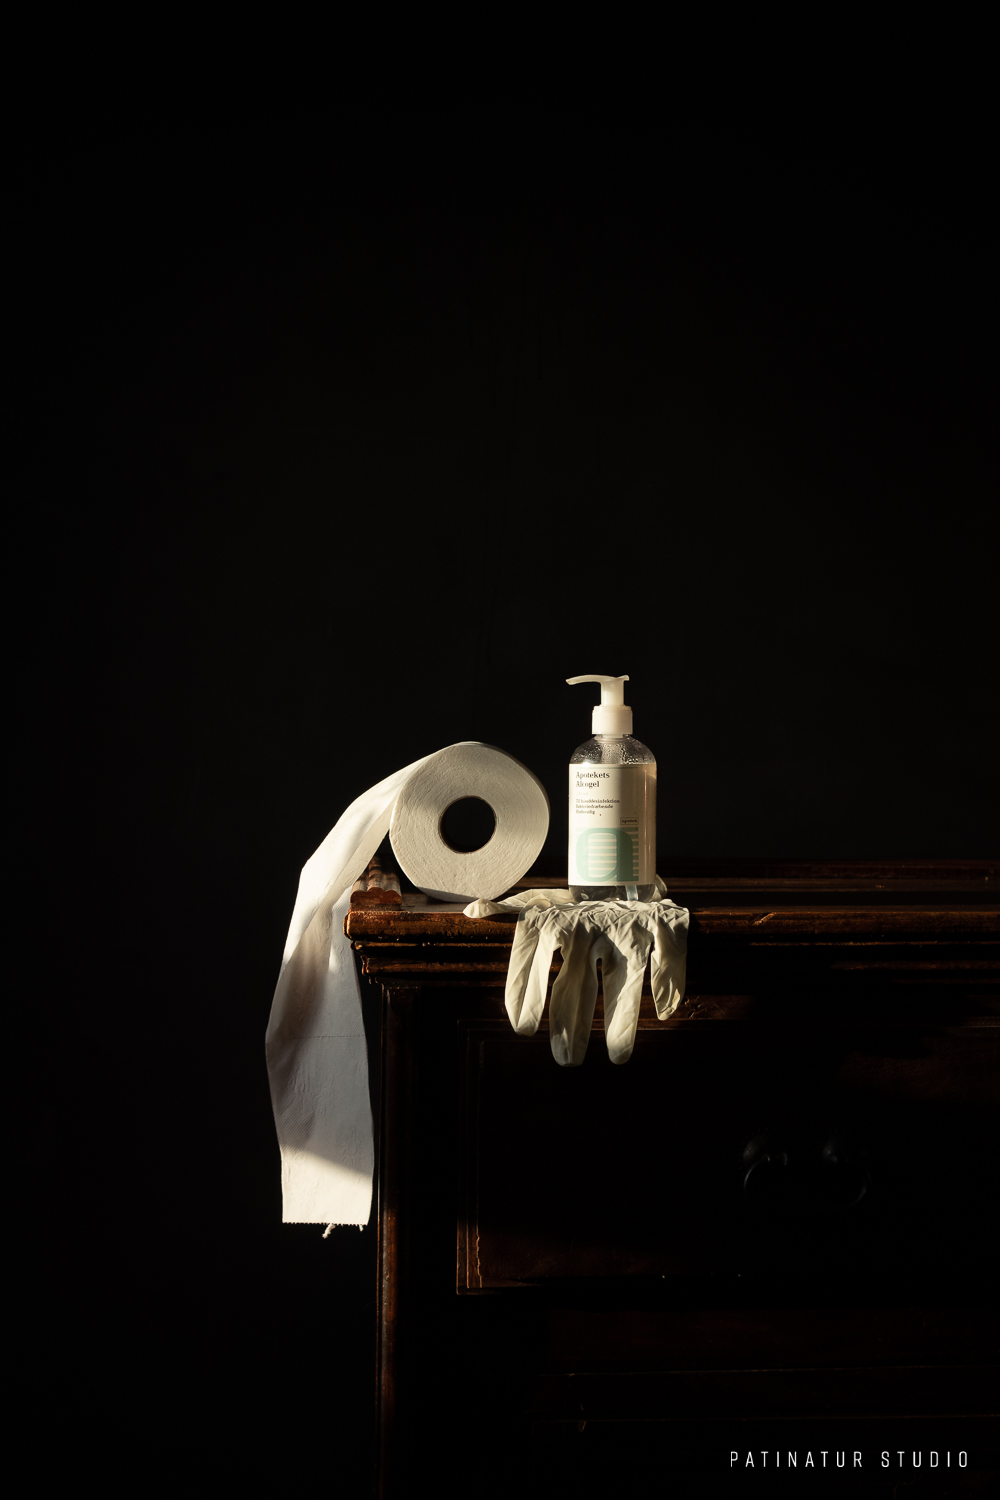 Photo Art | Corona pandemic 'Old Master' inspired still life with toilet paper, hand sanitizer and protective glove.